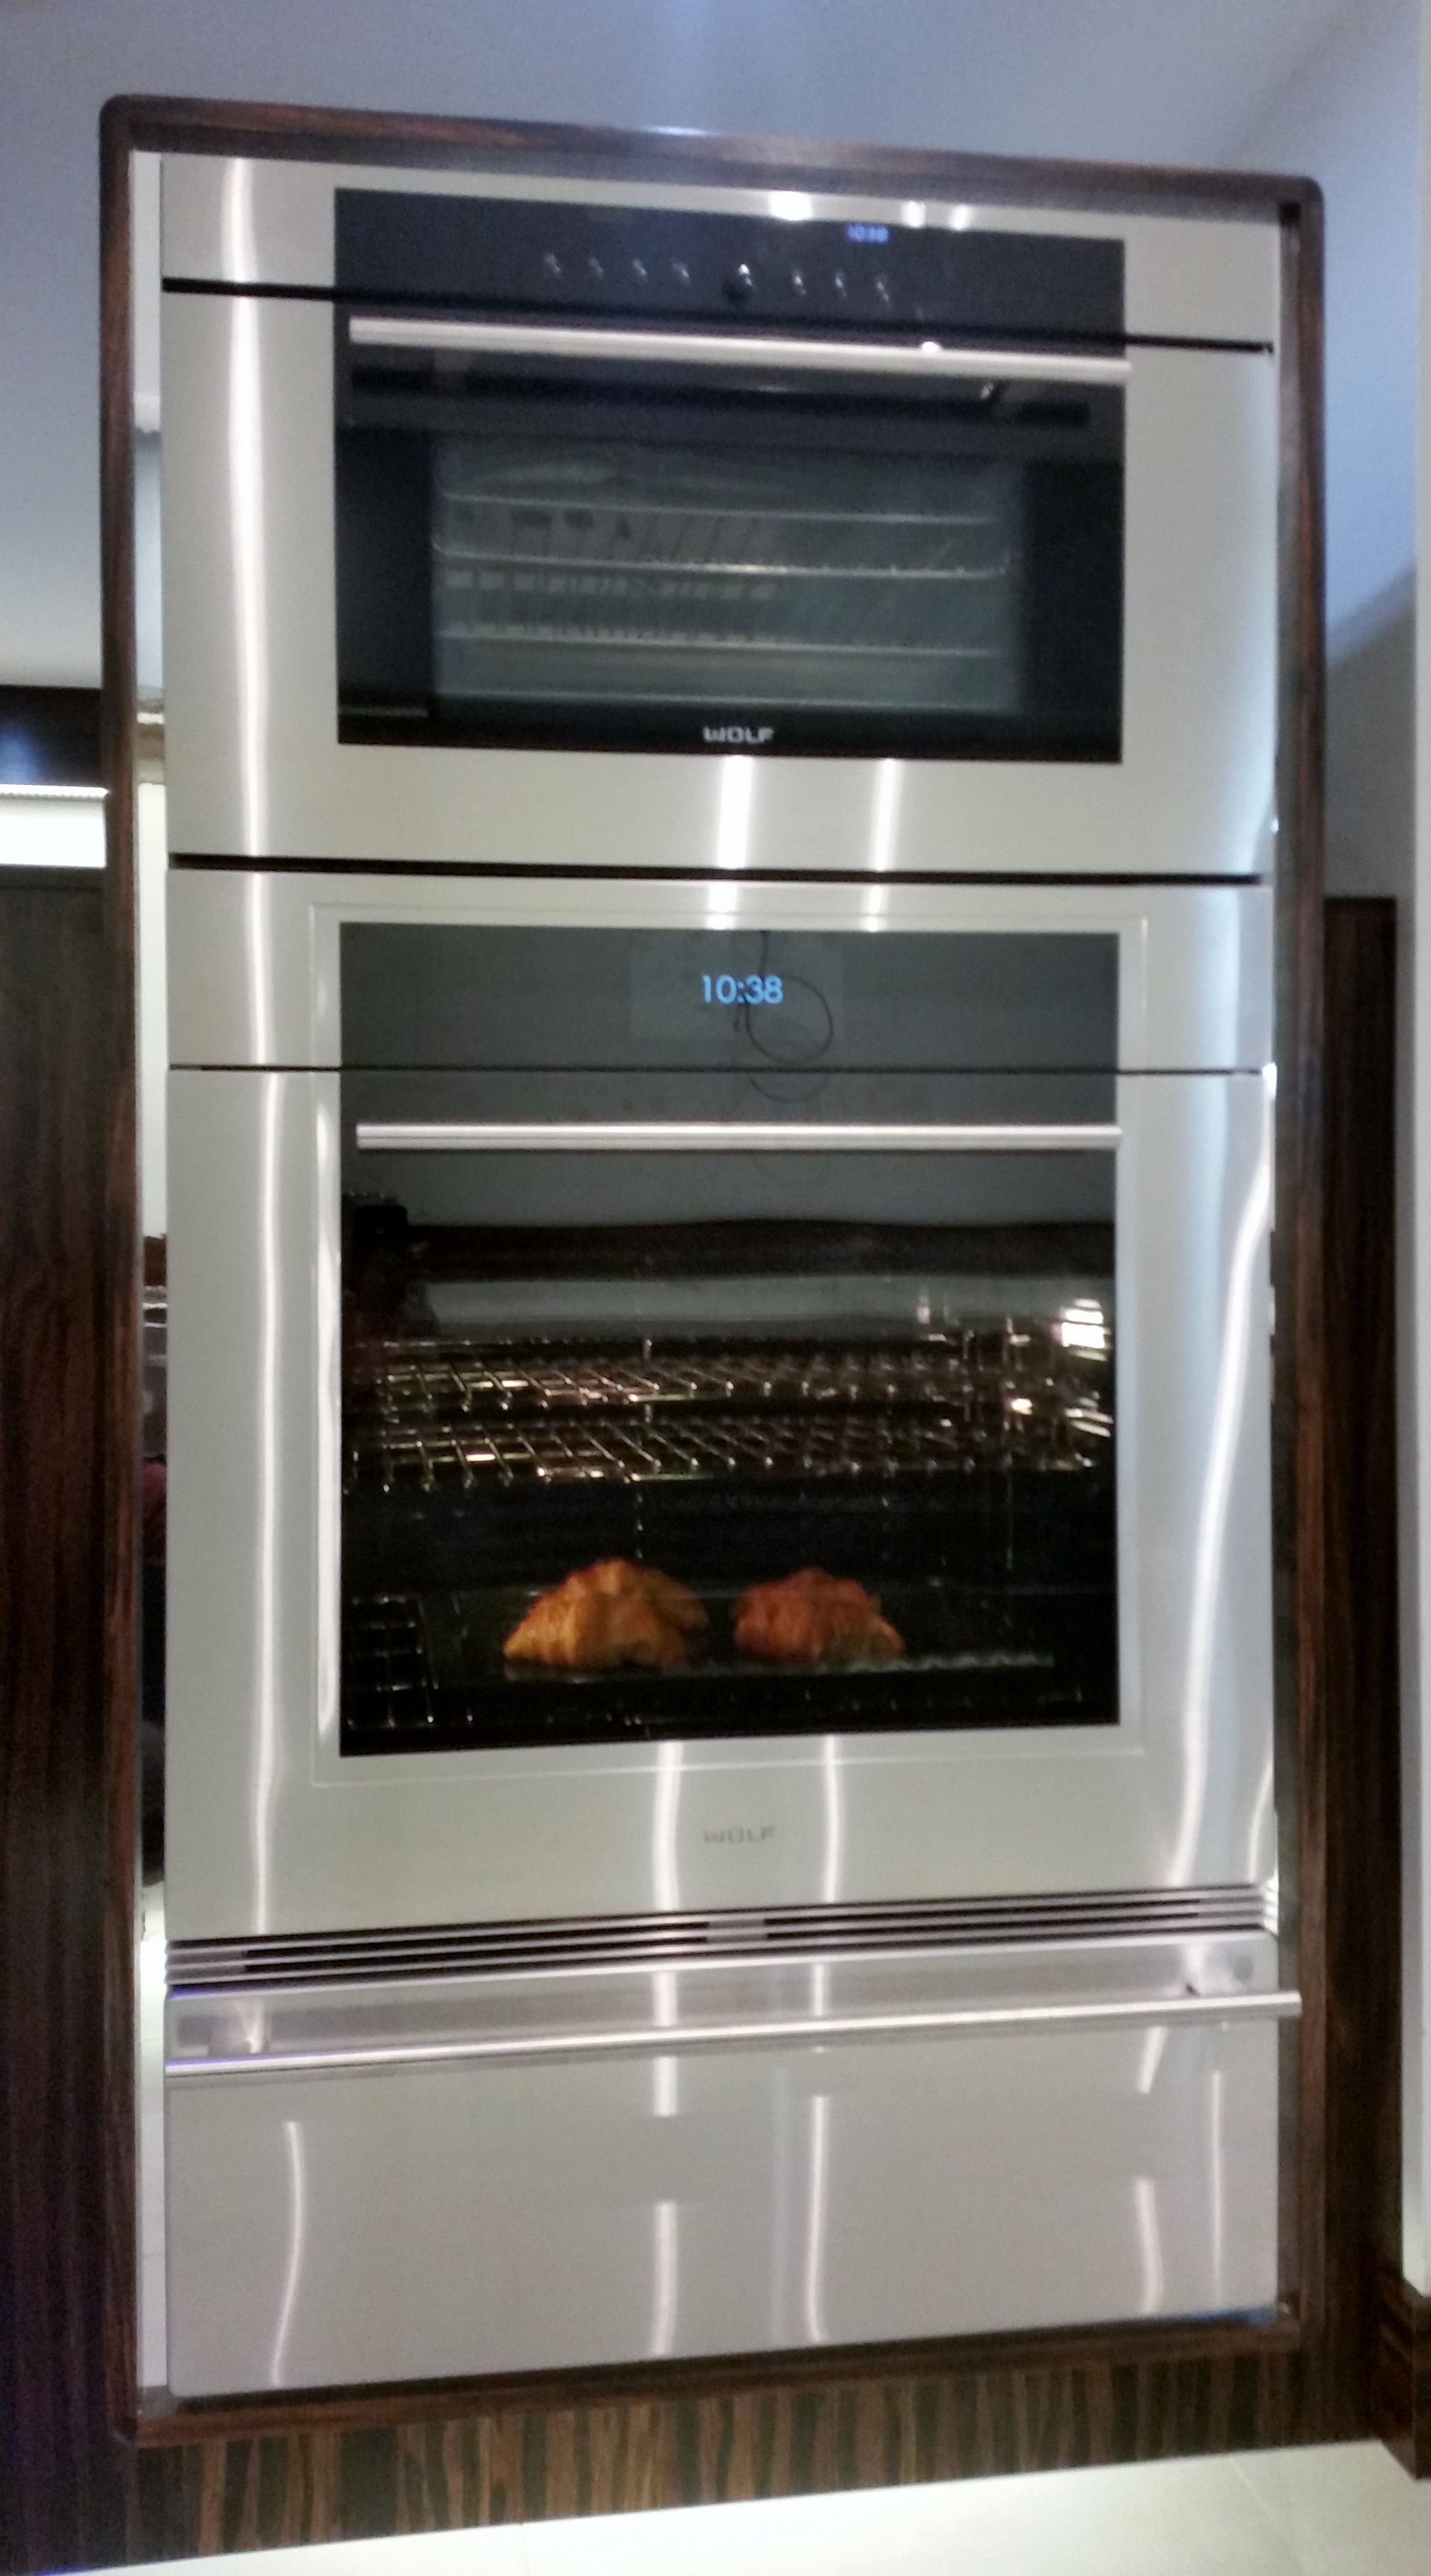 Uncategorized Wolf Kitchen Appliances Uk another first for potts we are please to say that is the kitchen wolf ovenkitchen showroomkitchen appliancesin uksay